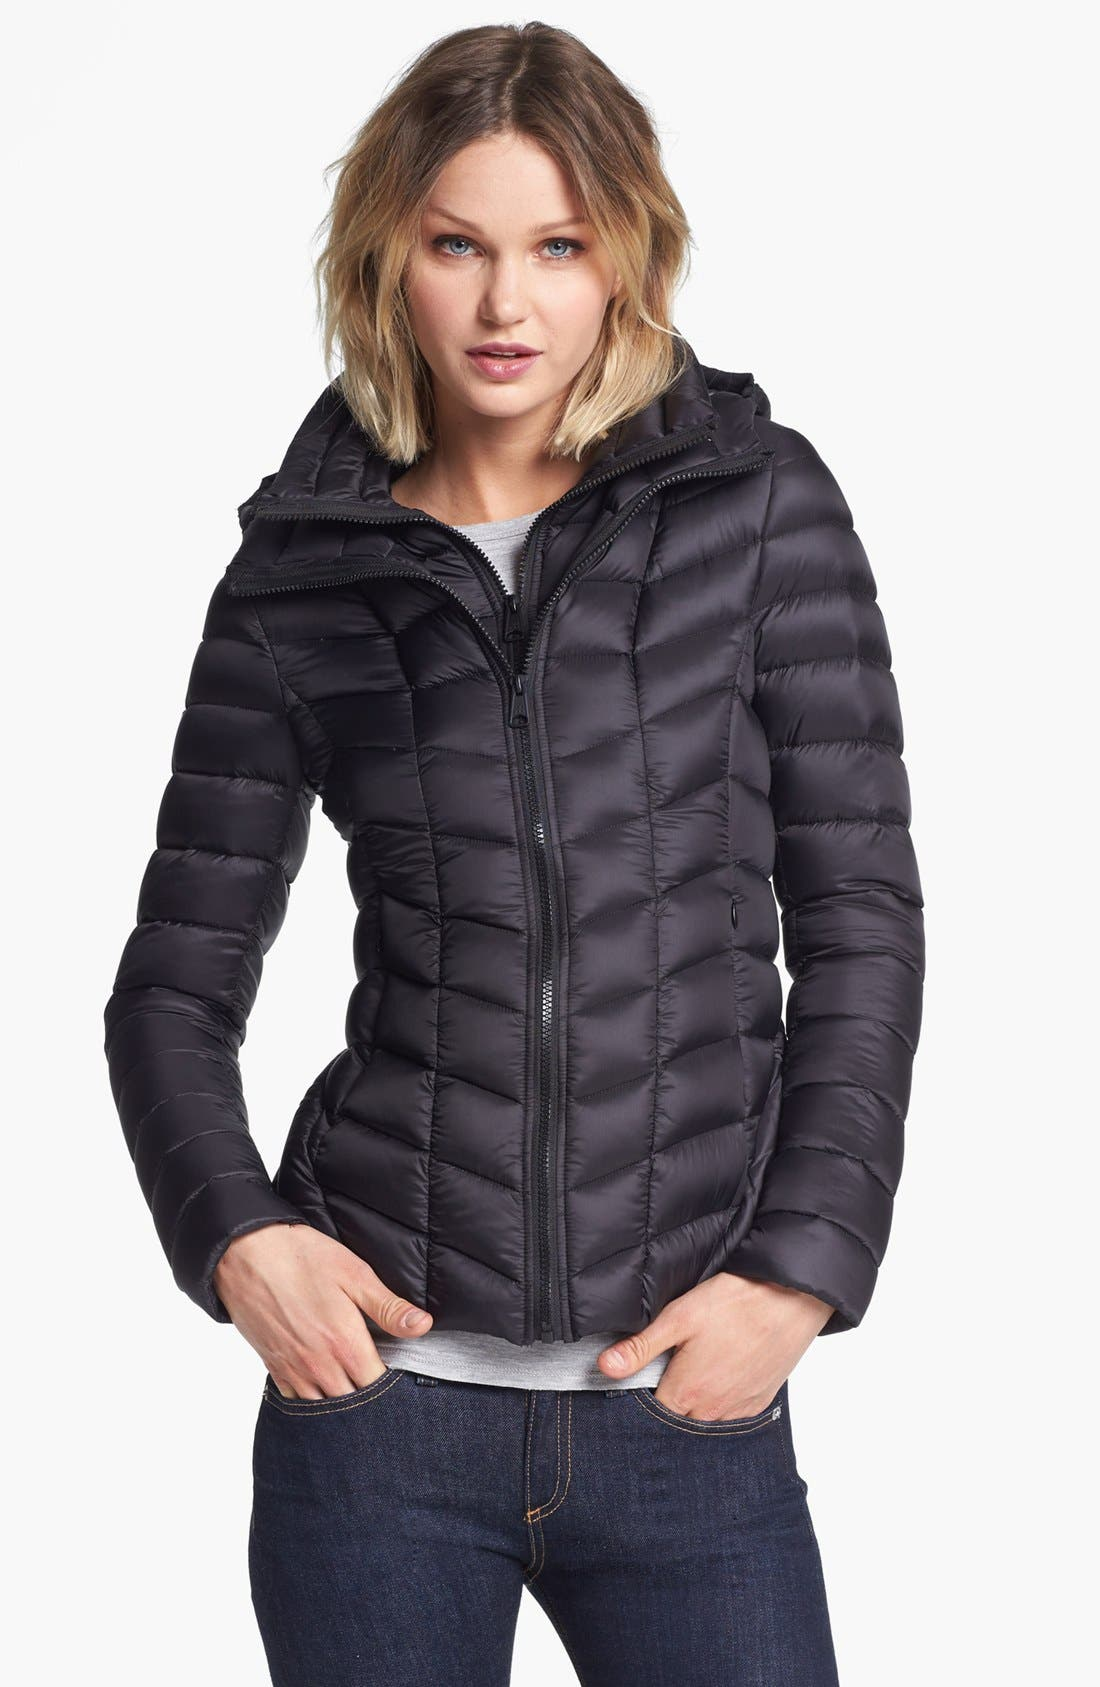 Main Image - Soia & Kyo Hooded Packable Down Jacket with Front Insert